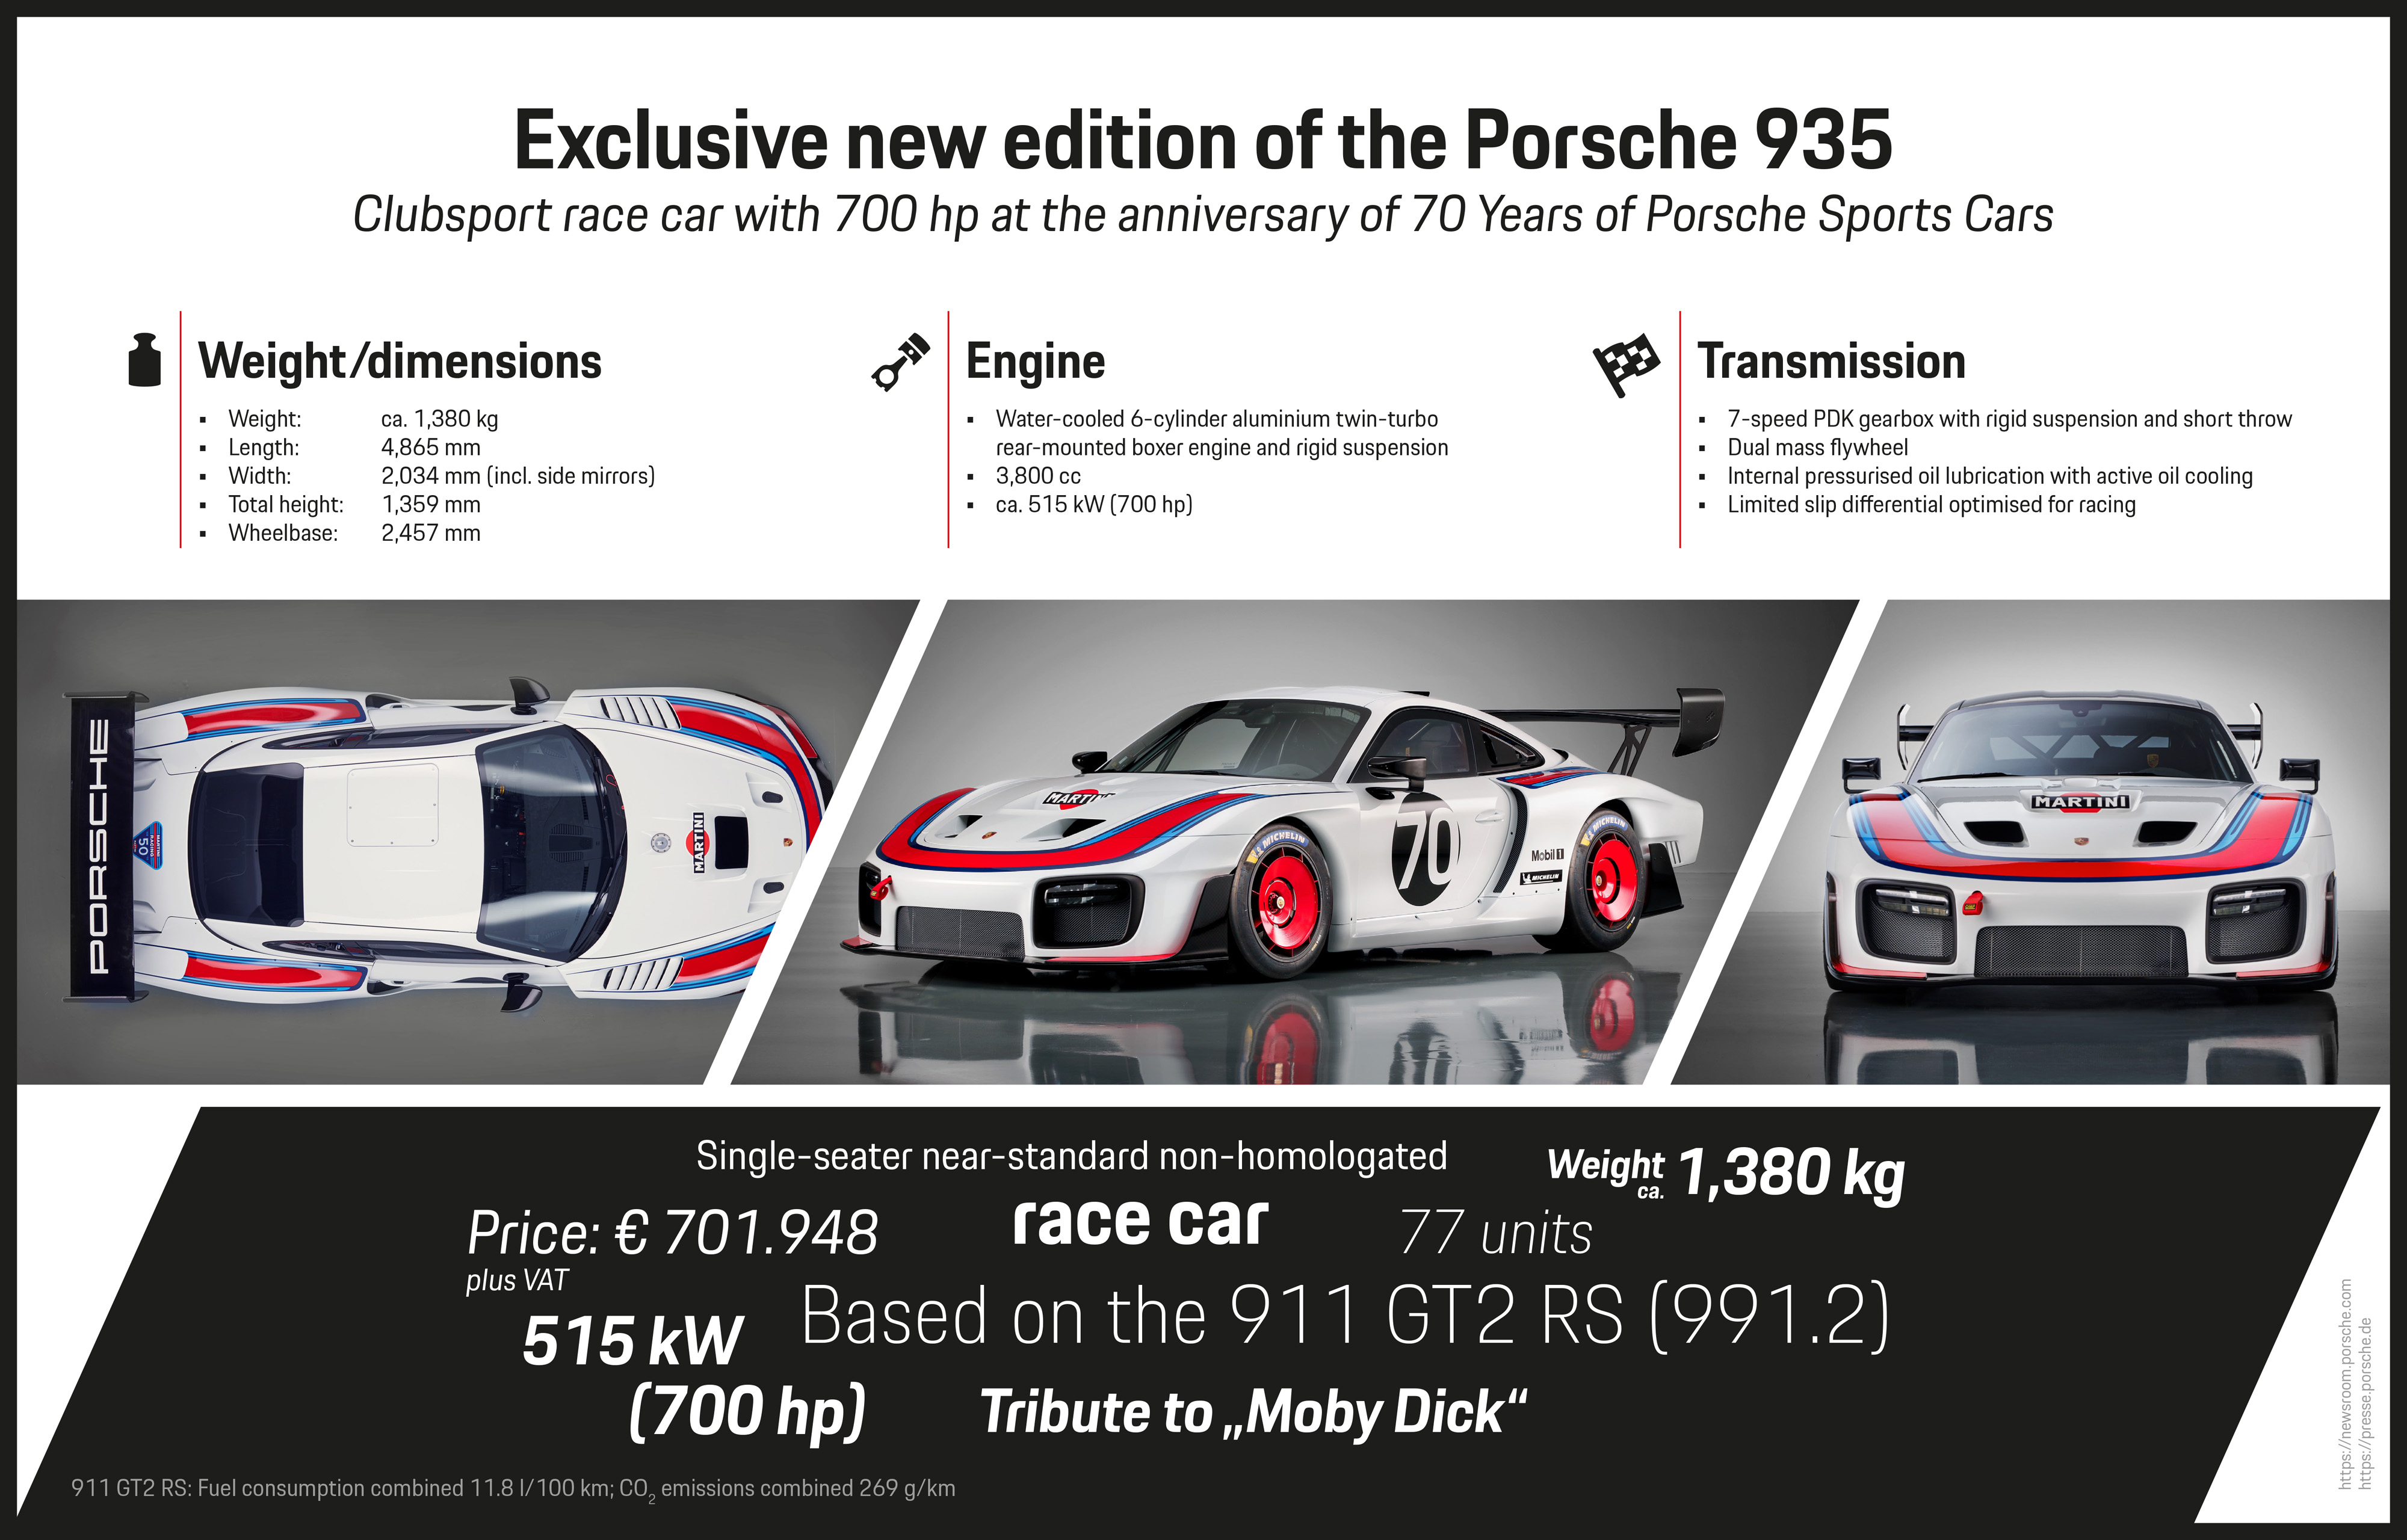 Exclusive new edition of the 935, info graphics, 2018, Porsche AG